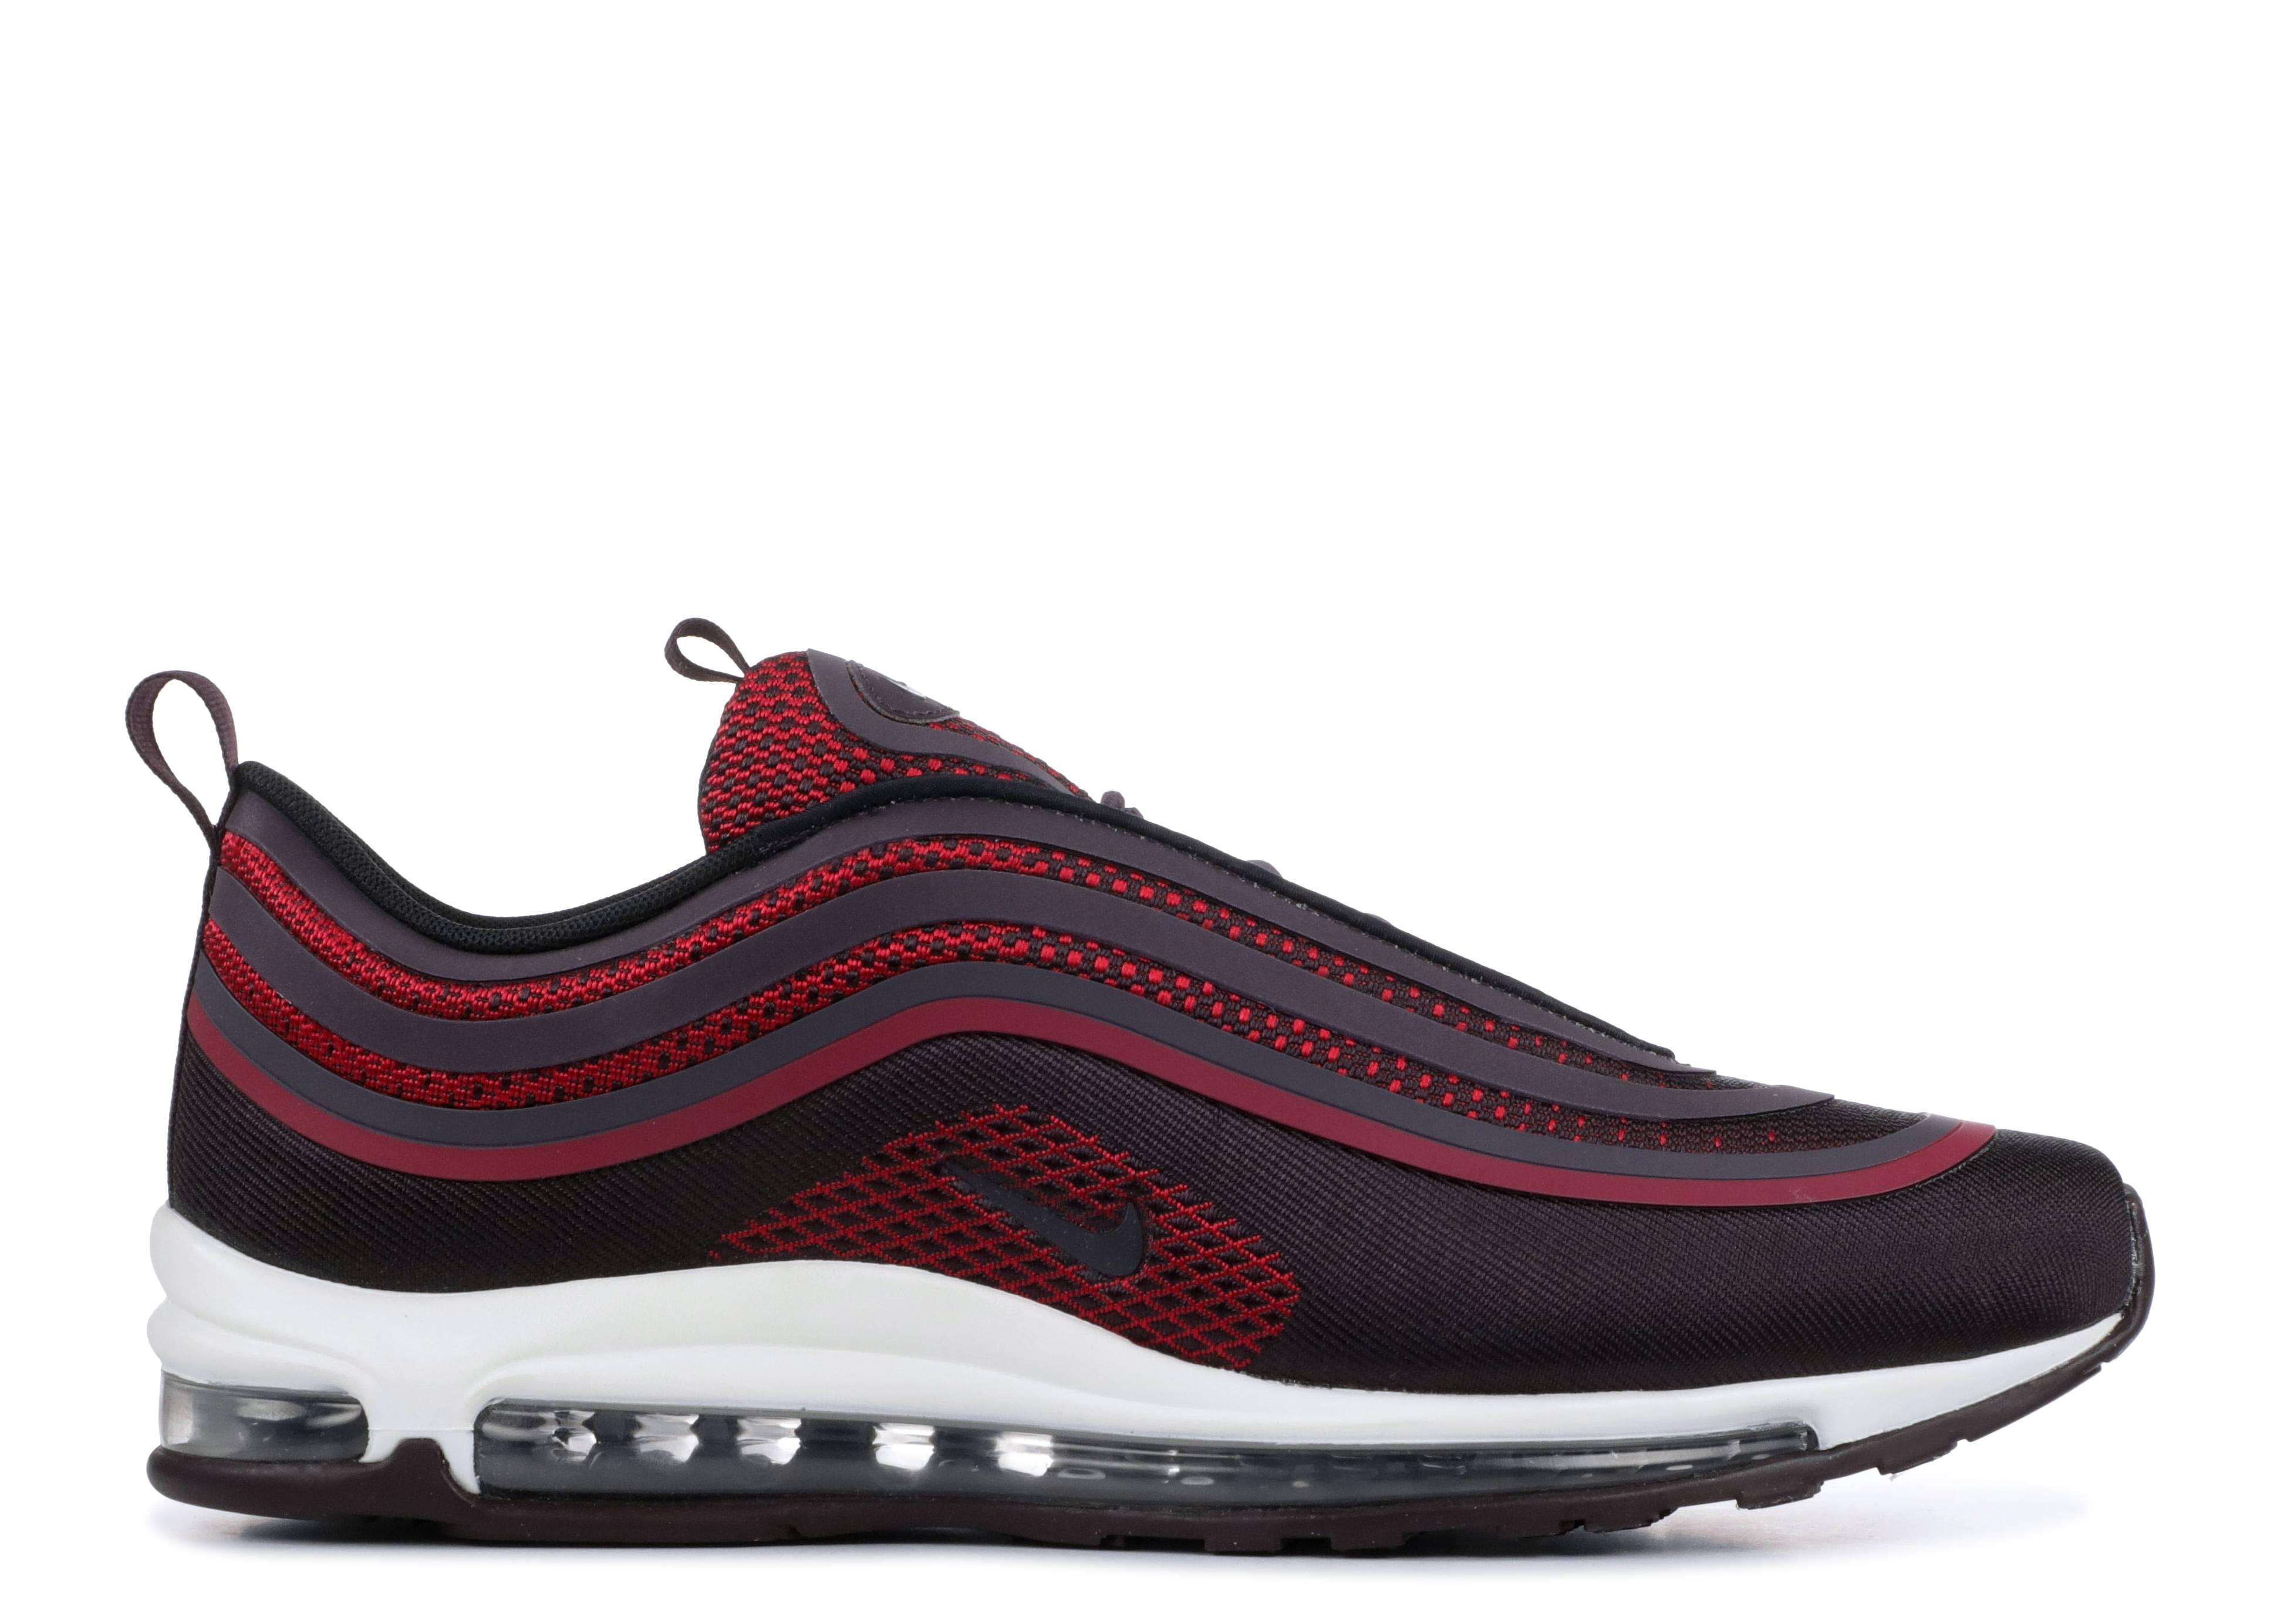 2c564498 Air Max 97 Ultra - Nike - 918356 600 - noble red/port wine/summit ...